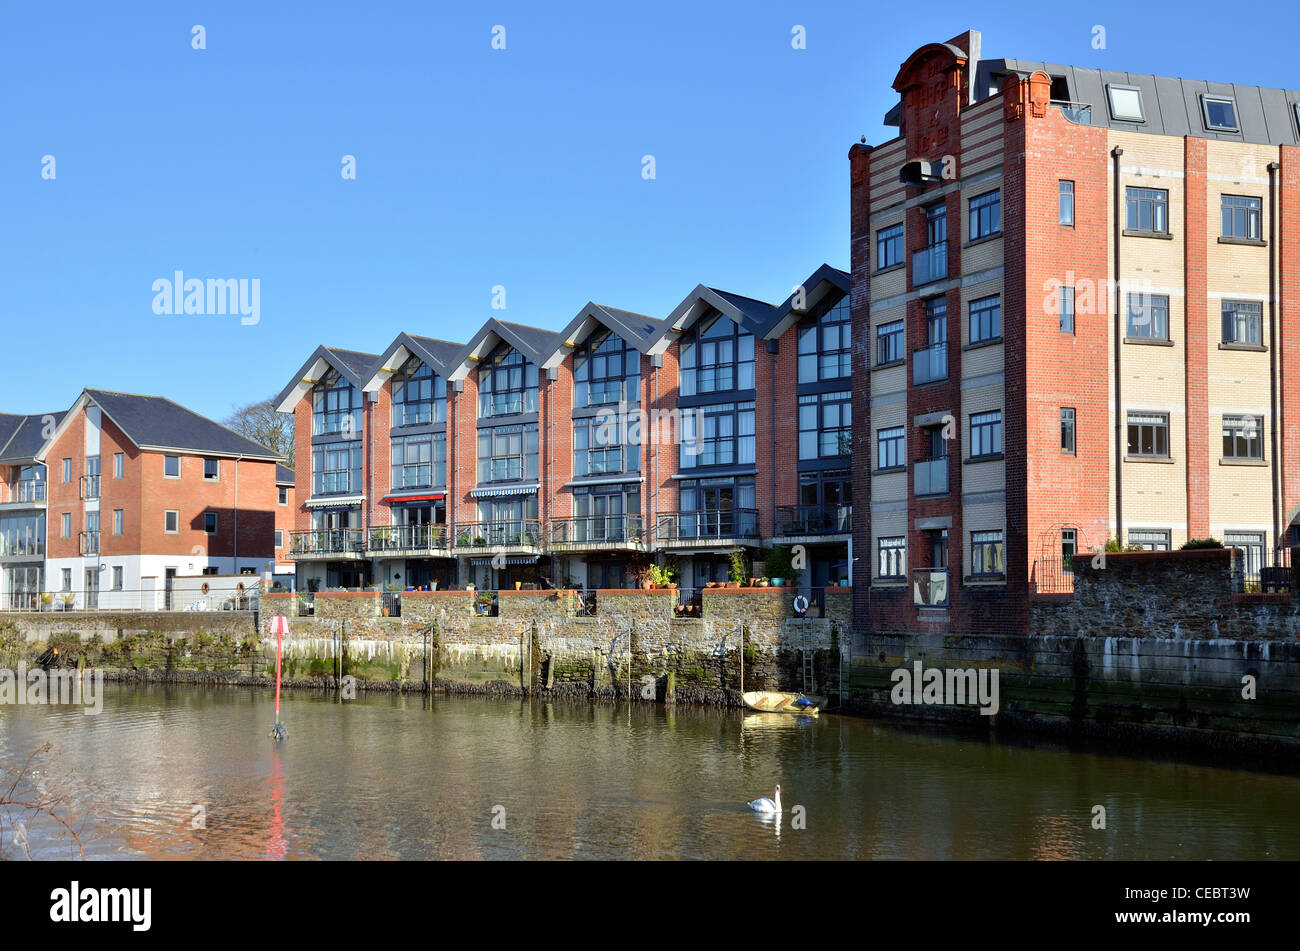 Riverside homes in Truro, Cornwall, the building used to be a warehouse before it was converted into apartments. - Stock Image